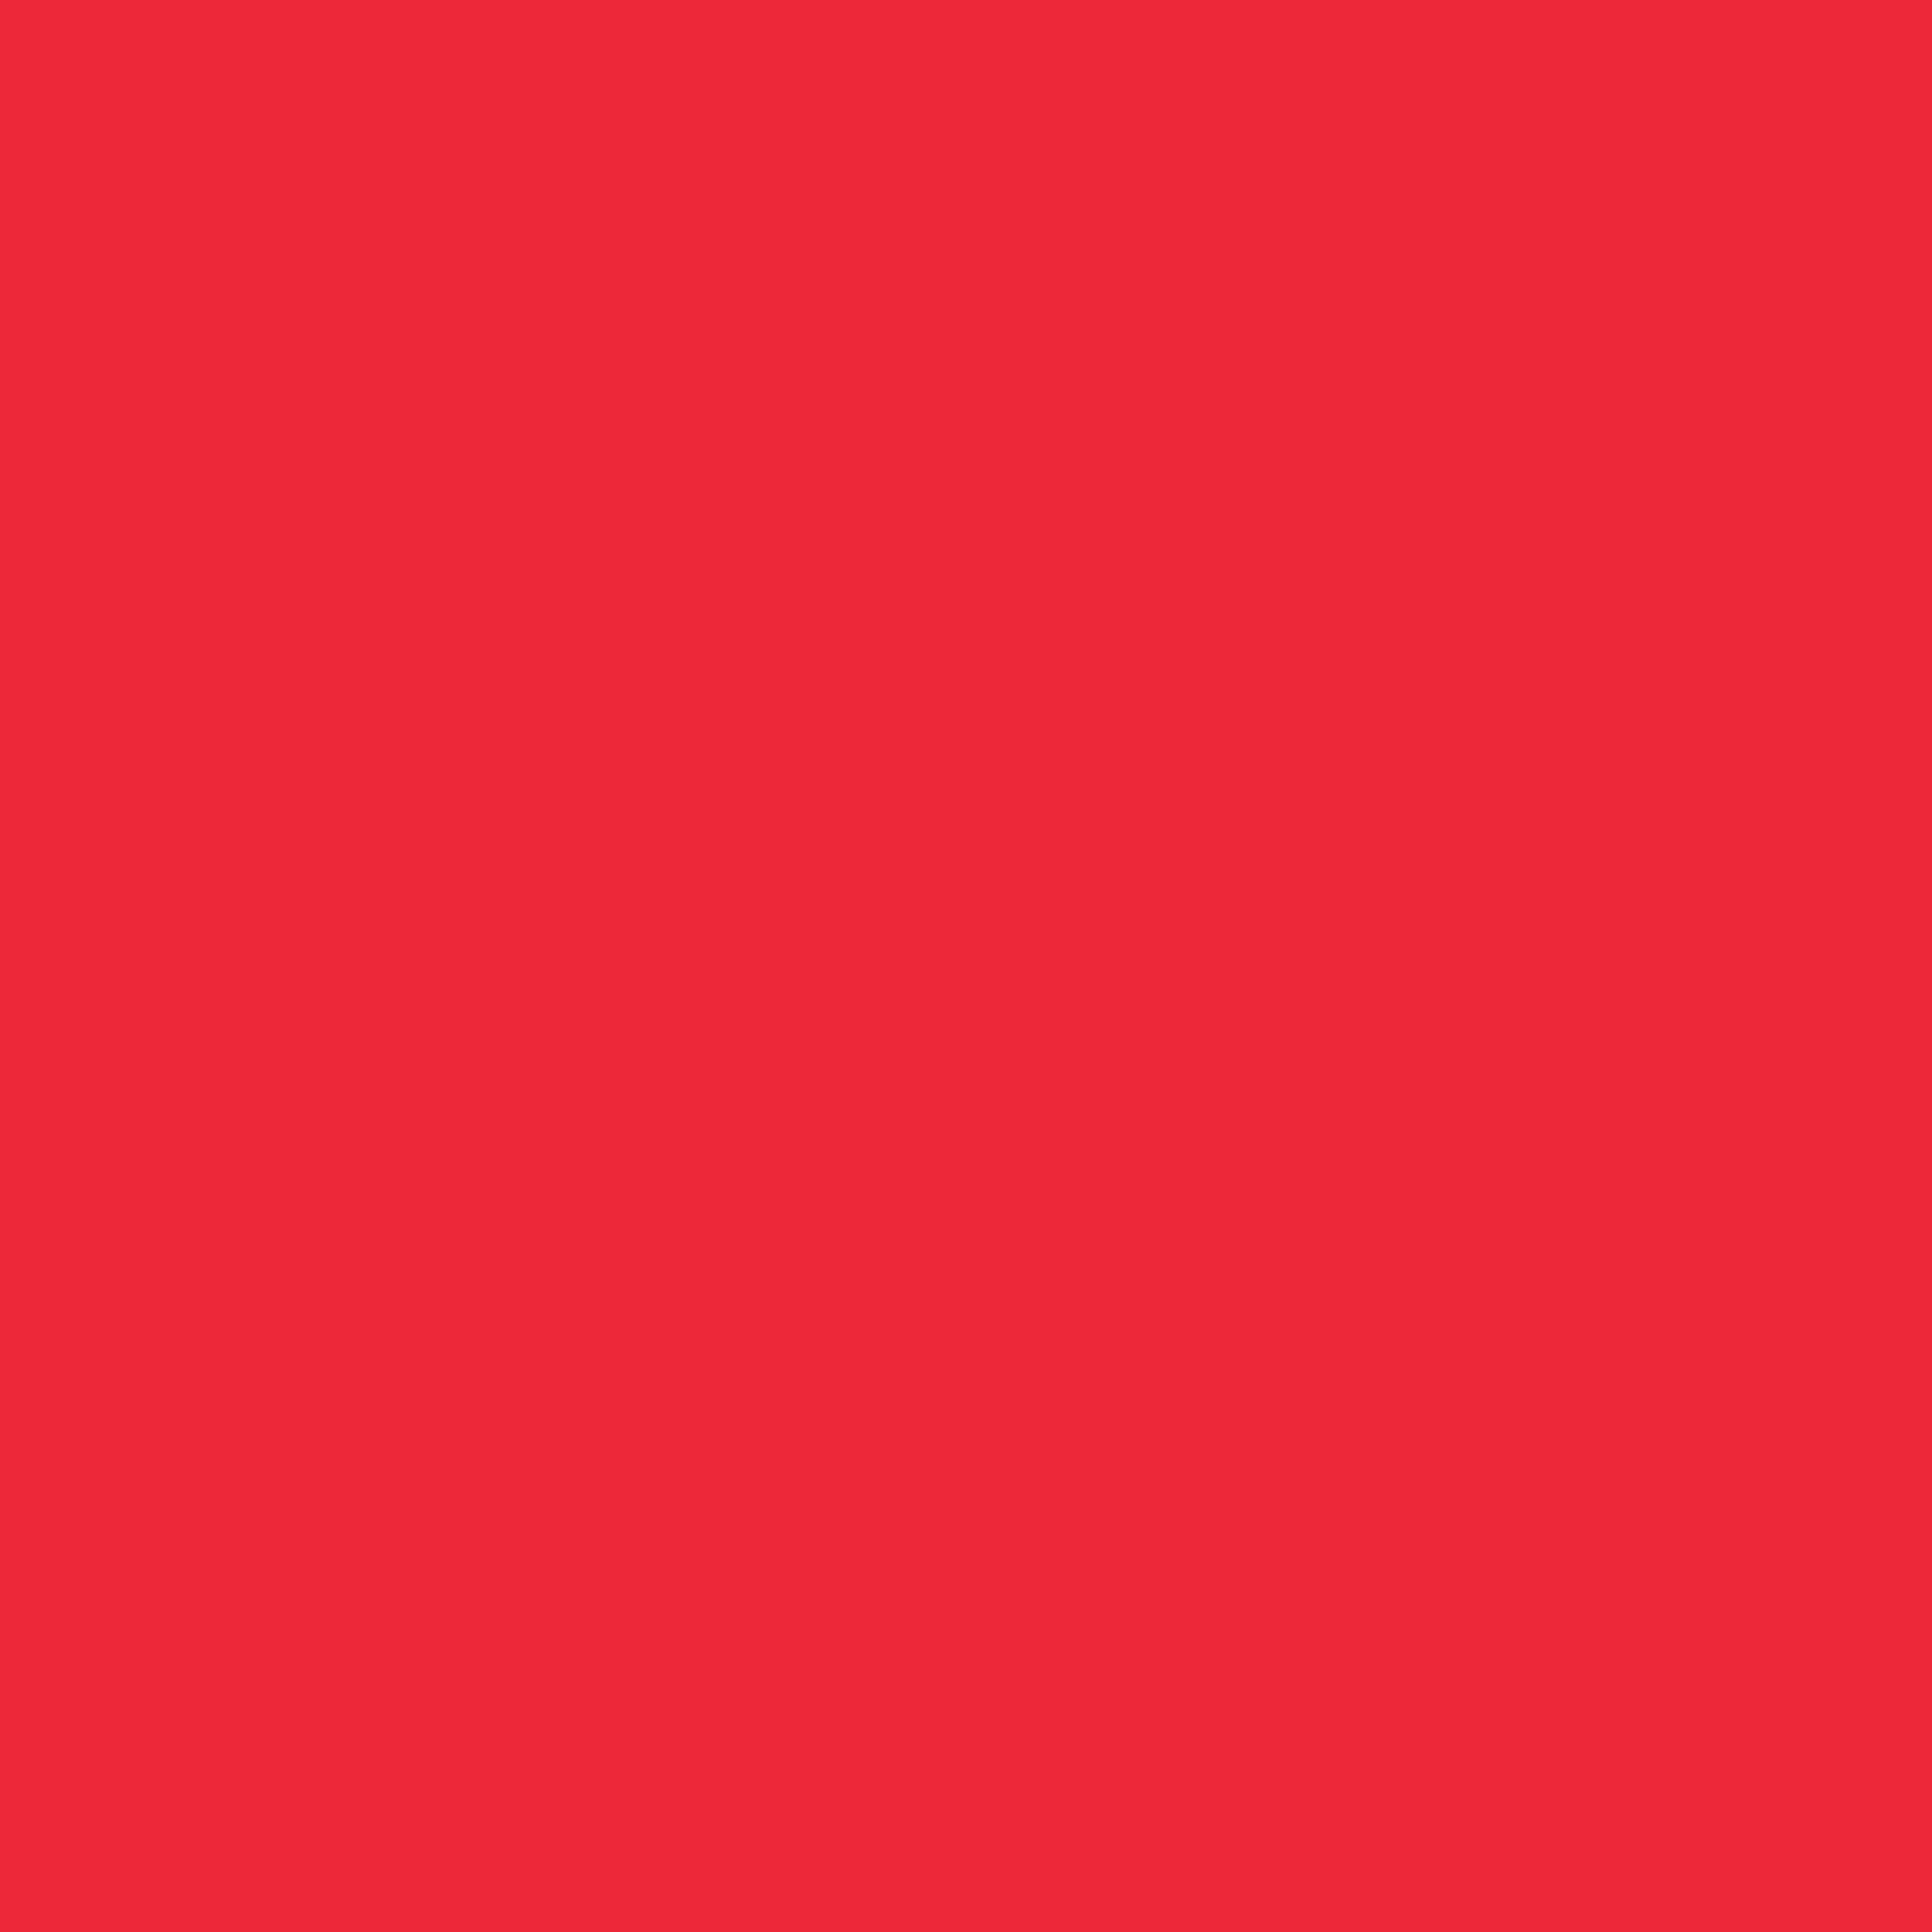 2732x2732 Imperial Red Solid Color Background